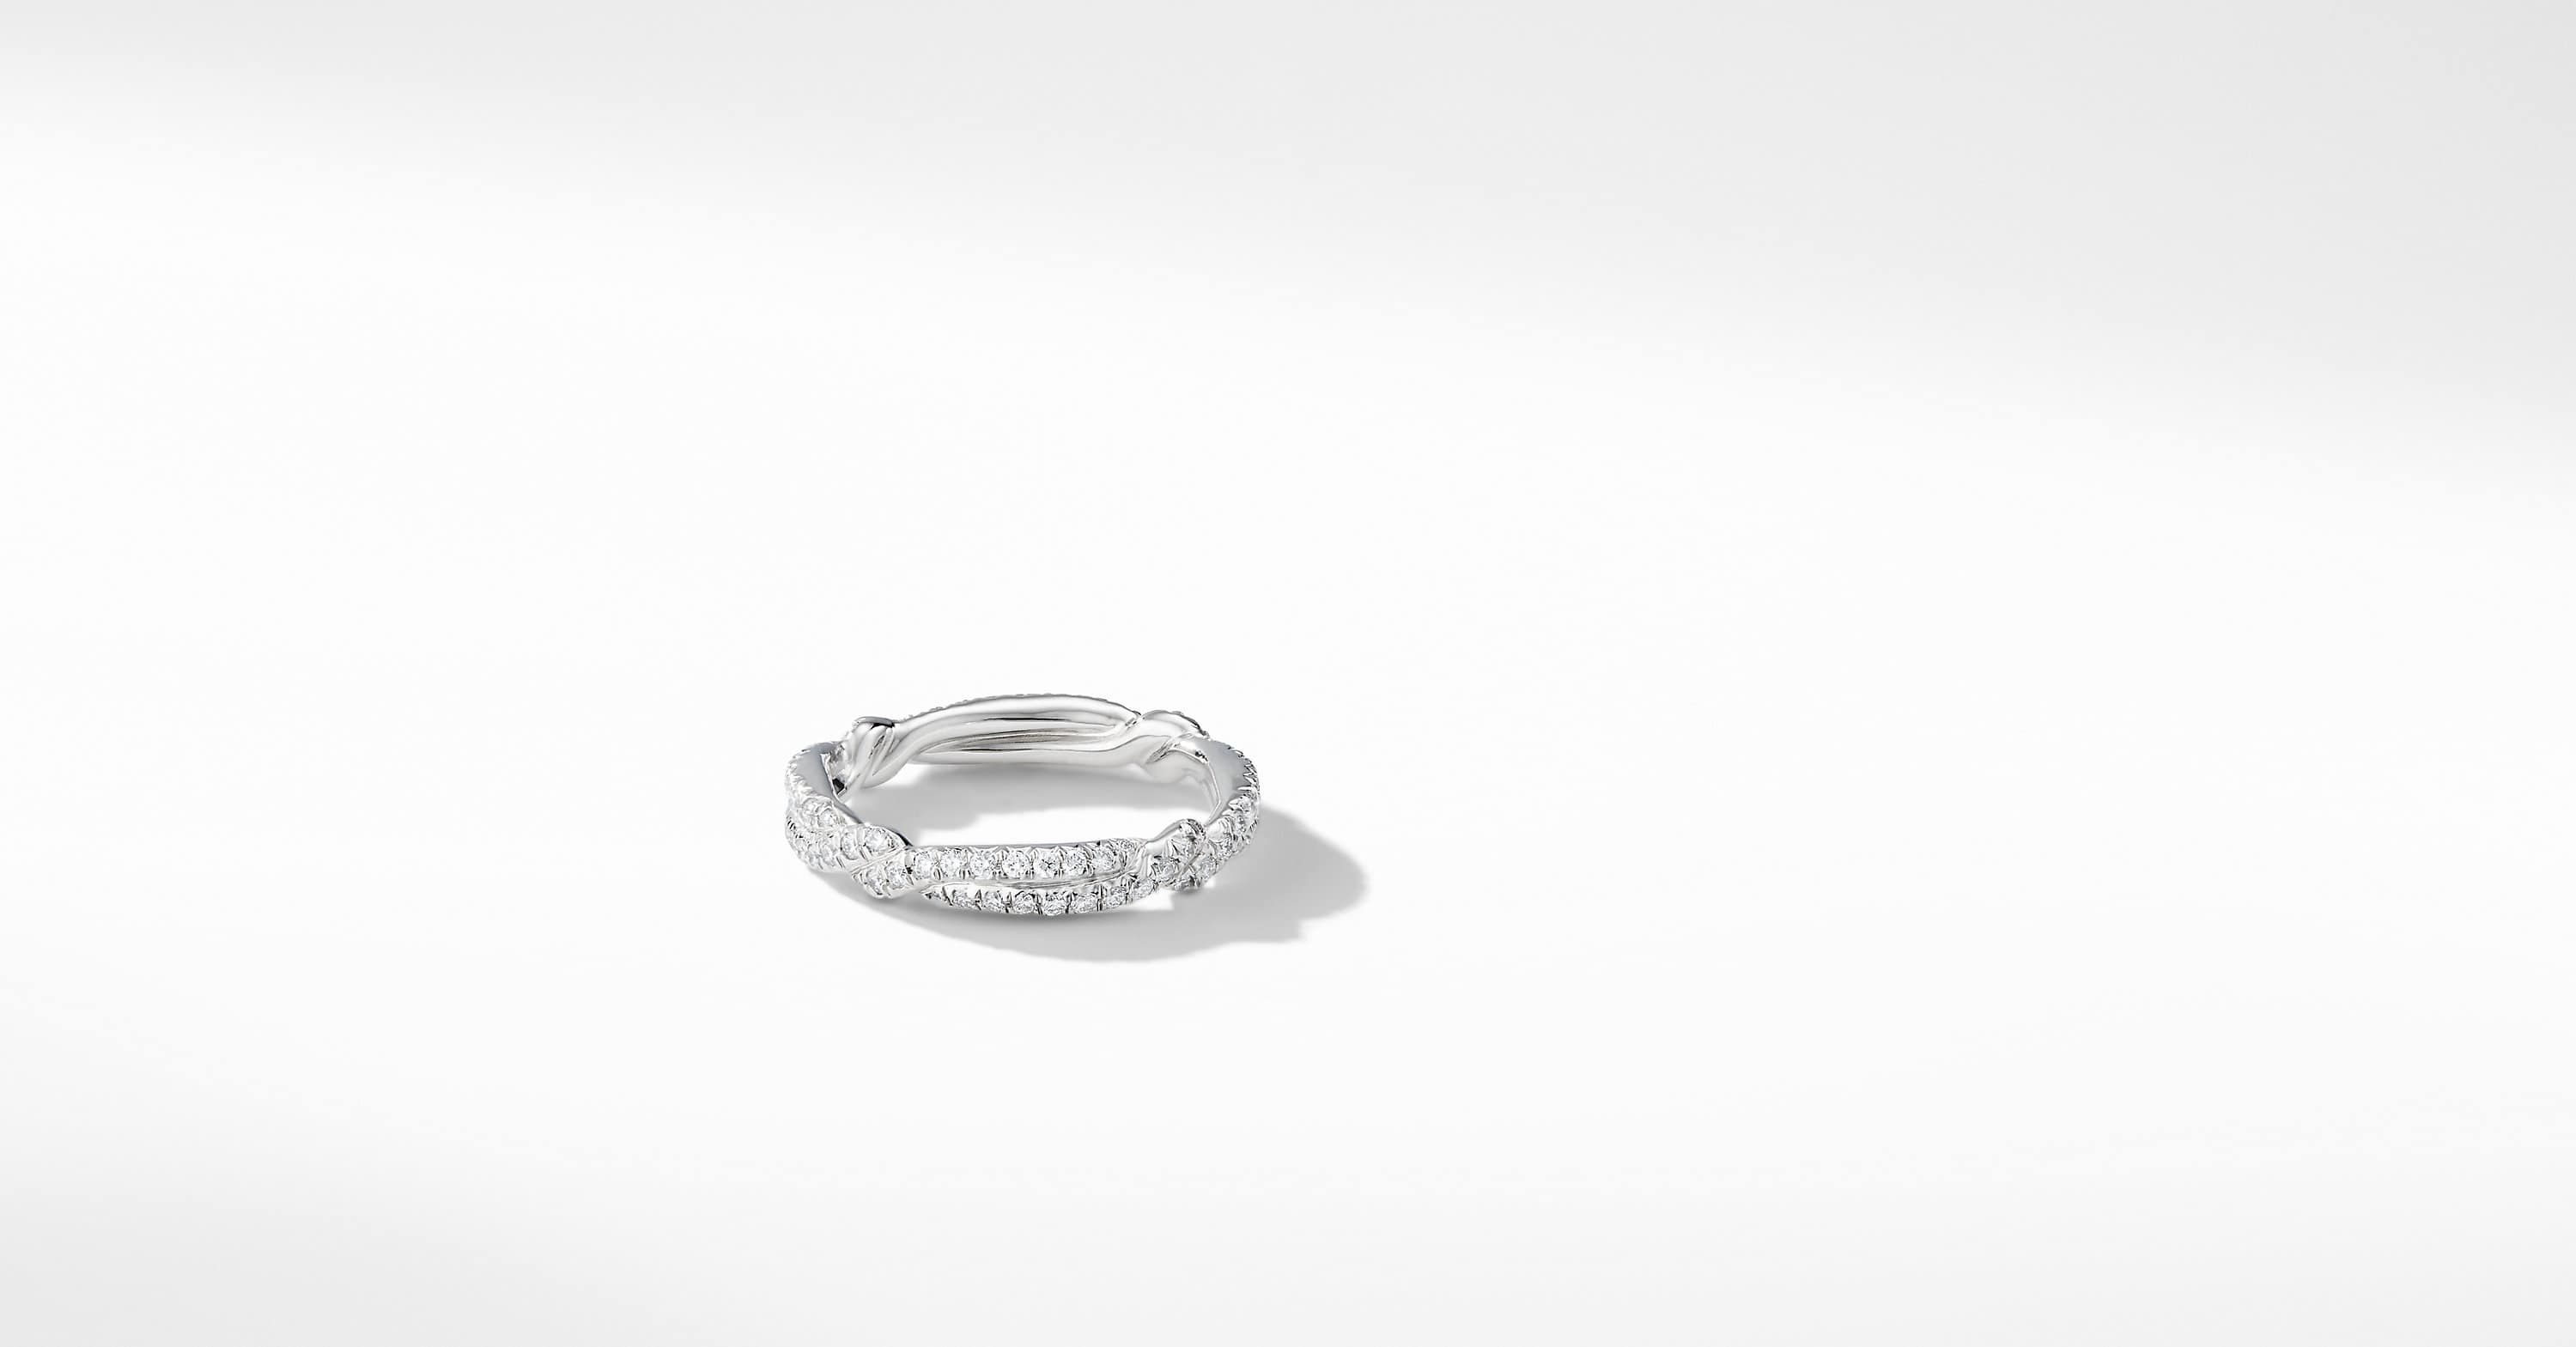 DY Wisteria Wedding Band with Diamonds in Platinum, 3mm